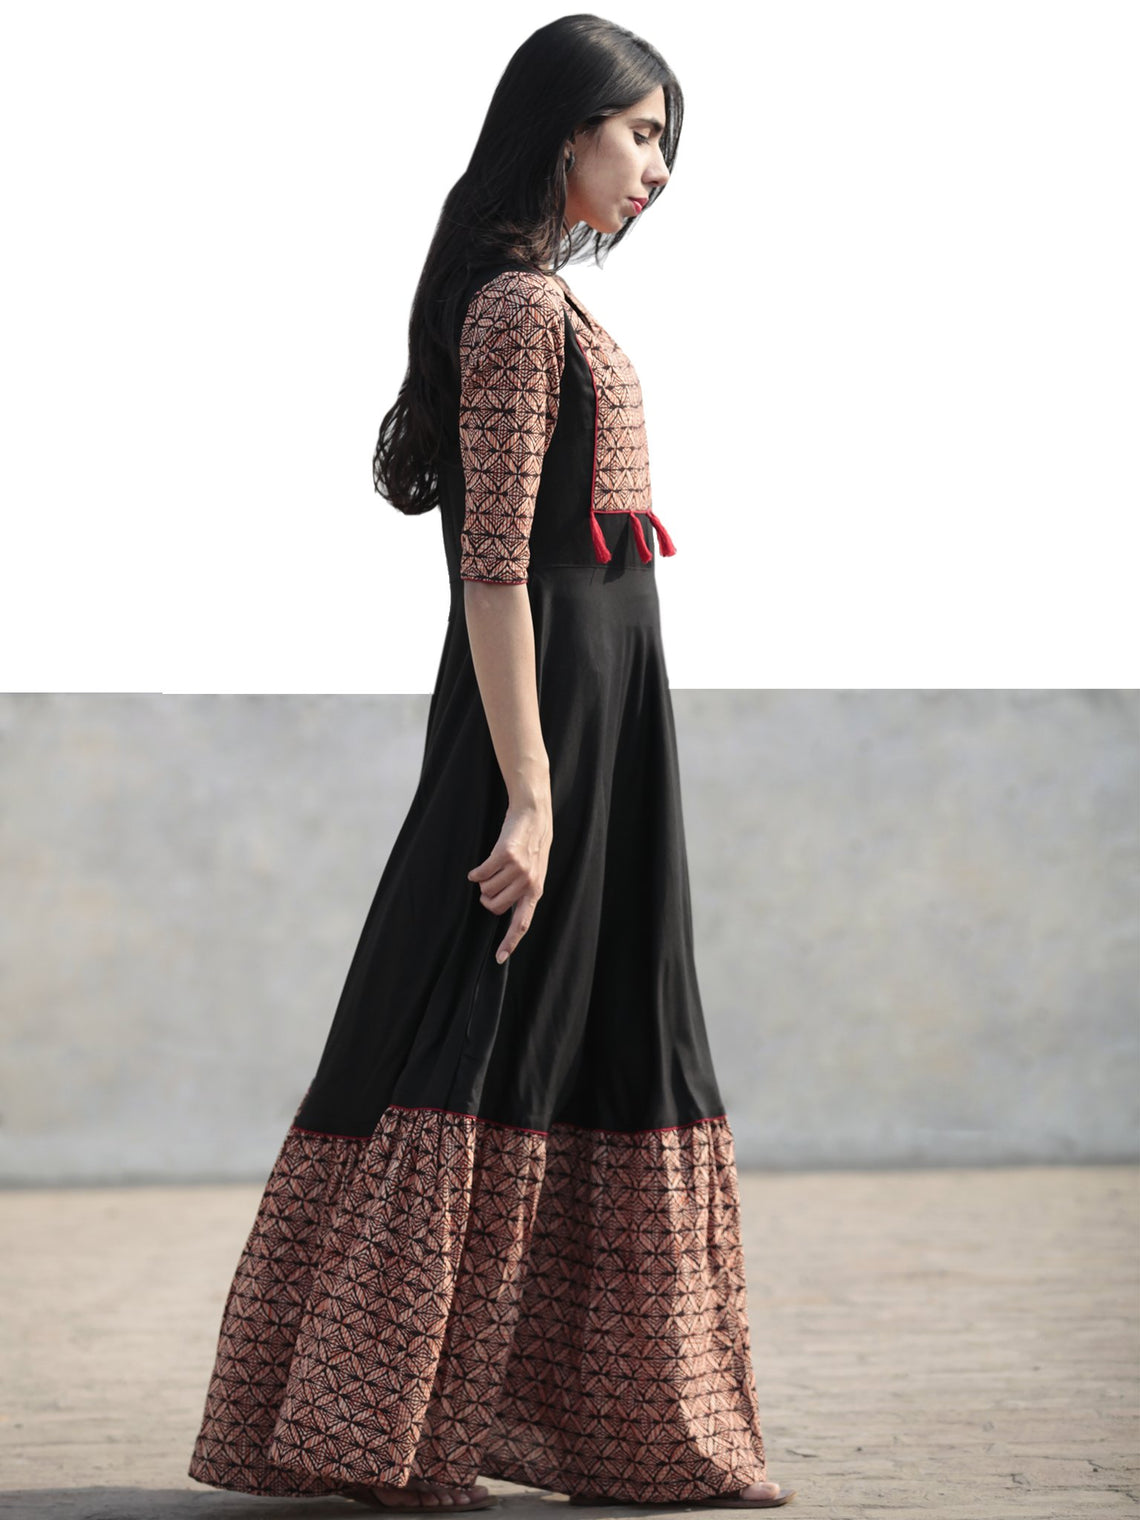 Black Beige Red Orange Hand Blocked Long Cotton And Rayon Dress With Tassel Details - D181F1075